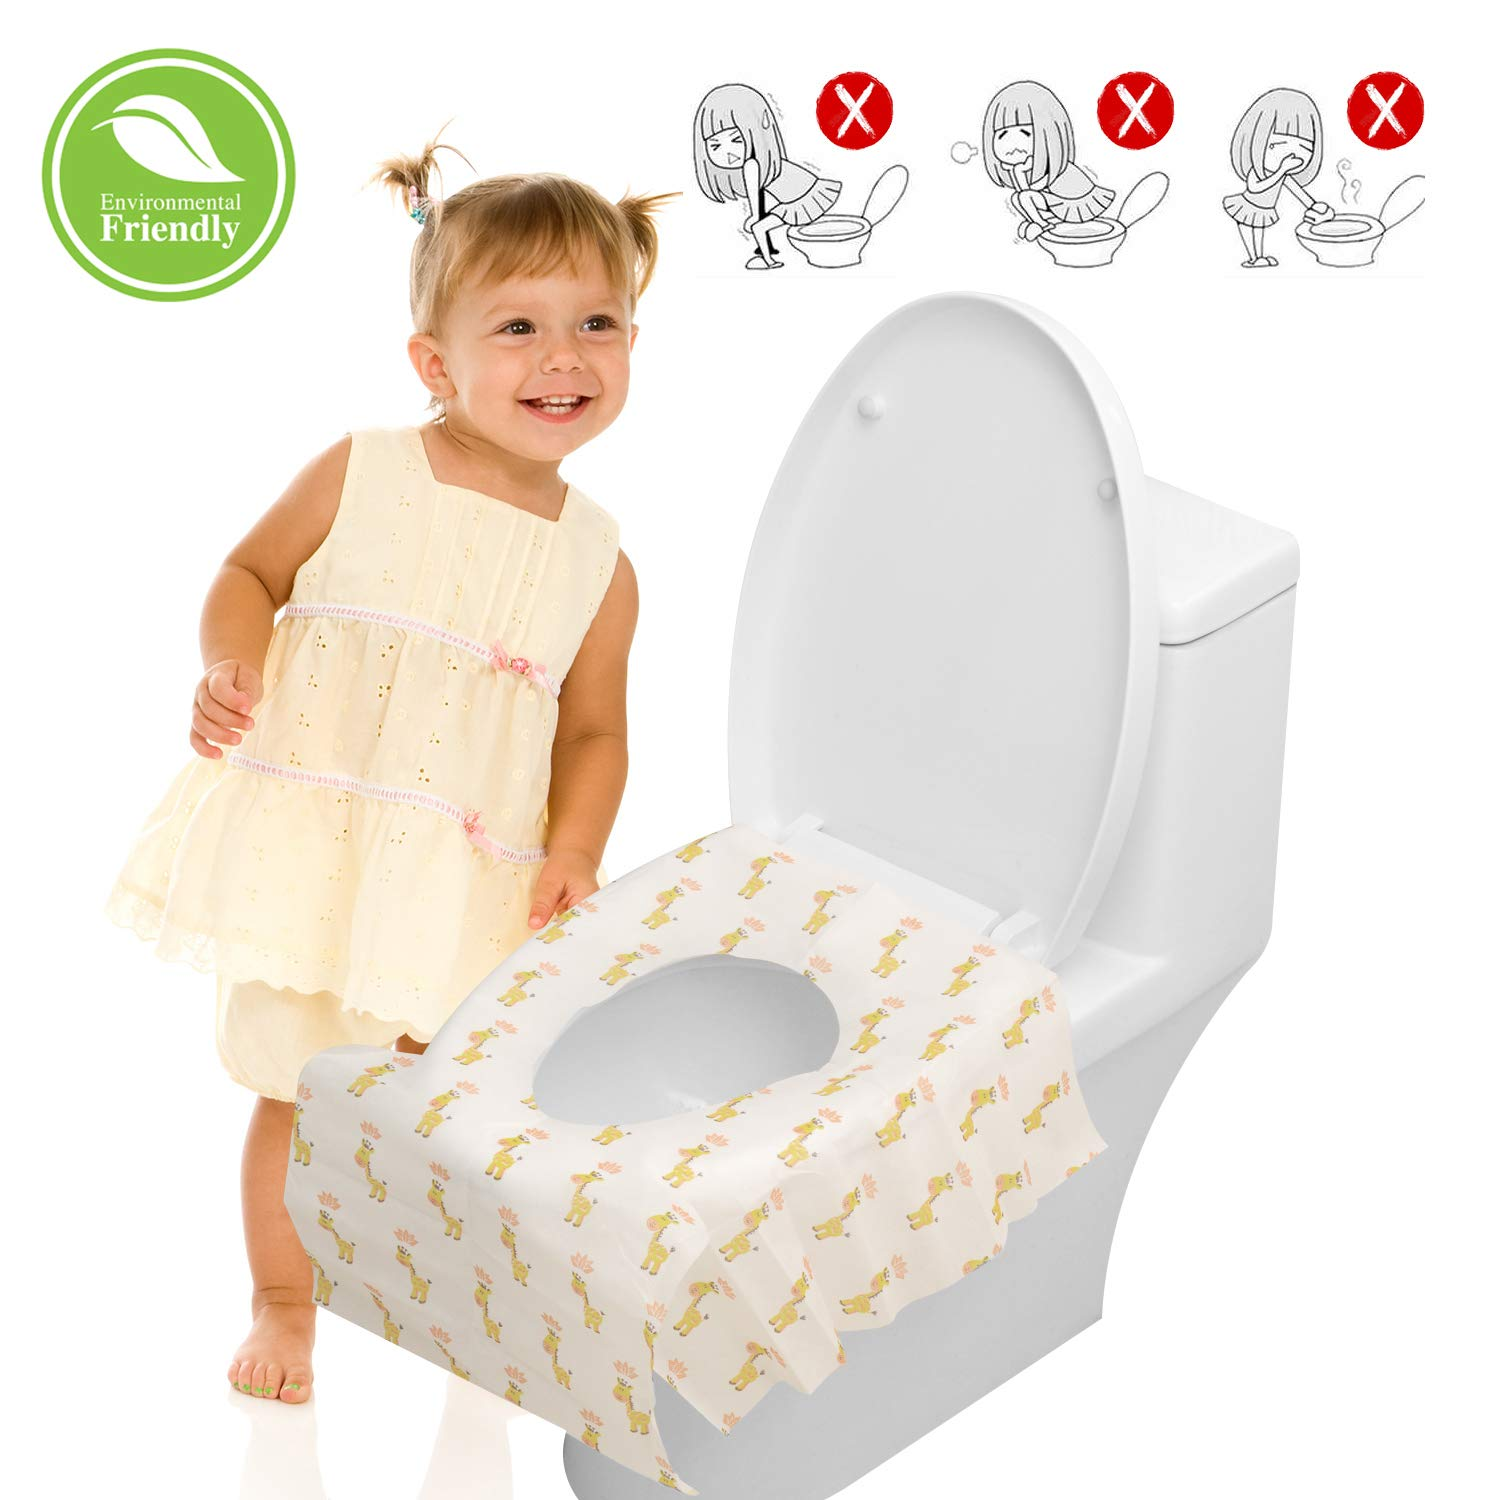 """Disposable Toilet Seat Covers for Kids - 20 Packs Toilet Covers Disposable Extra Large (24.6"""" X 25.9"""") Travel Individually Wrapped Portable Toddler Toilet Seat Cover Adhesive No Slip for Baby Potty Yarrades"""